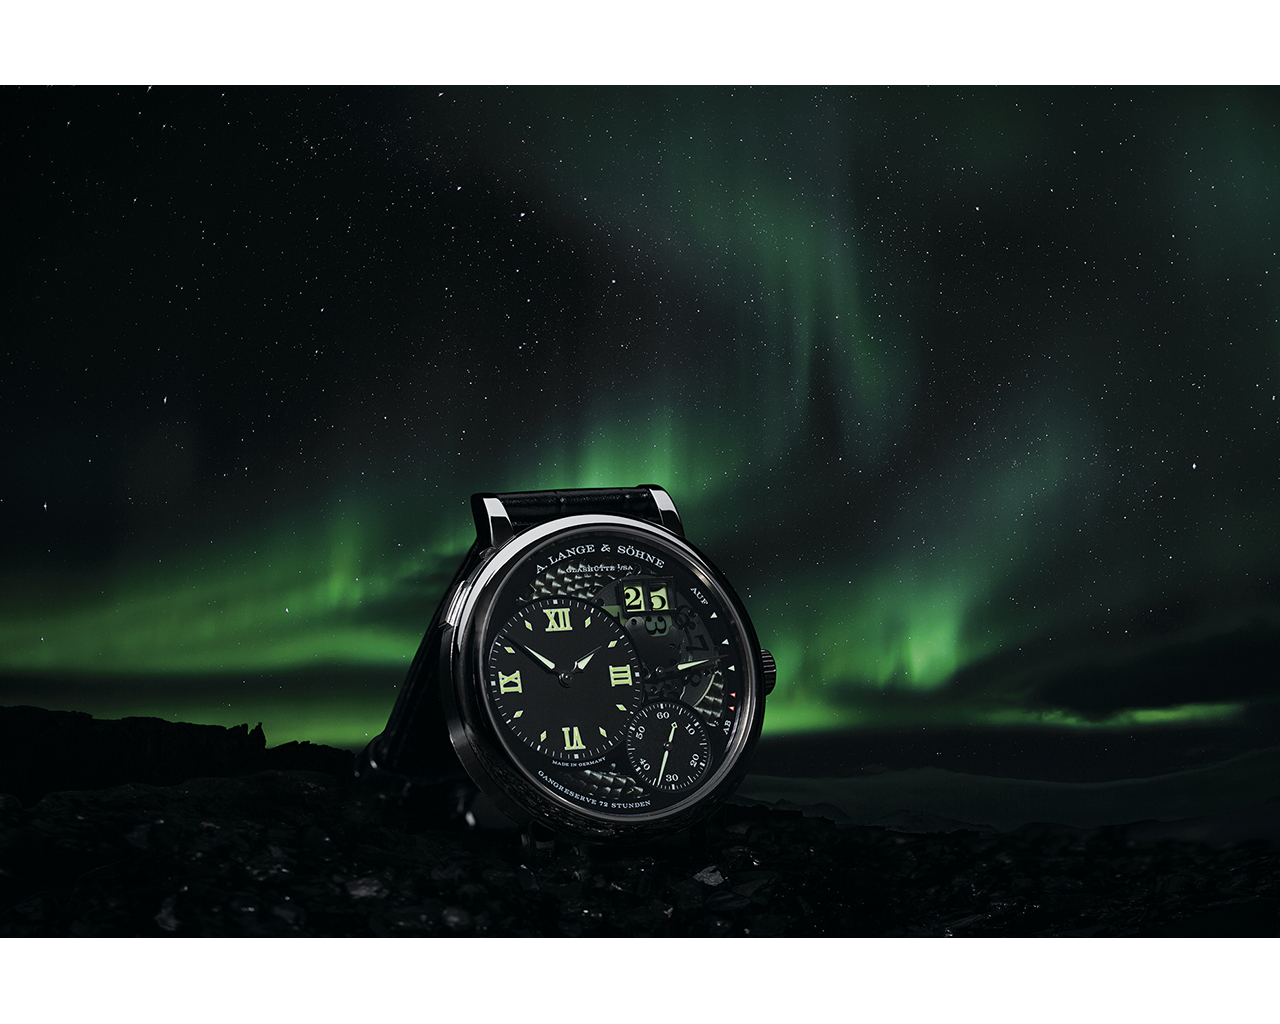 ALS_NorthernLights_1_117_035_web